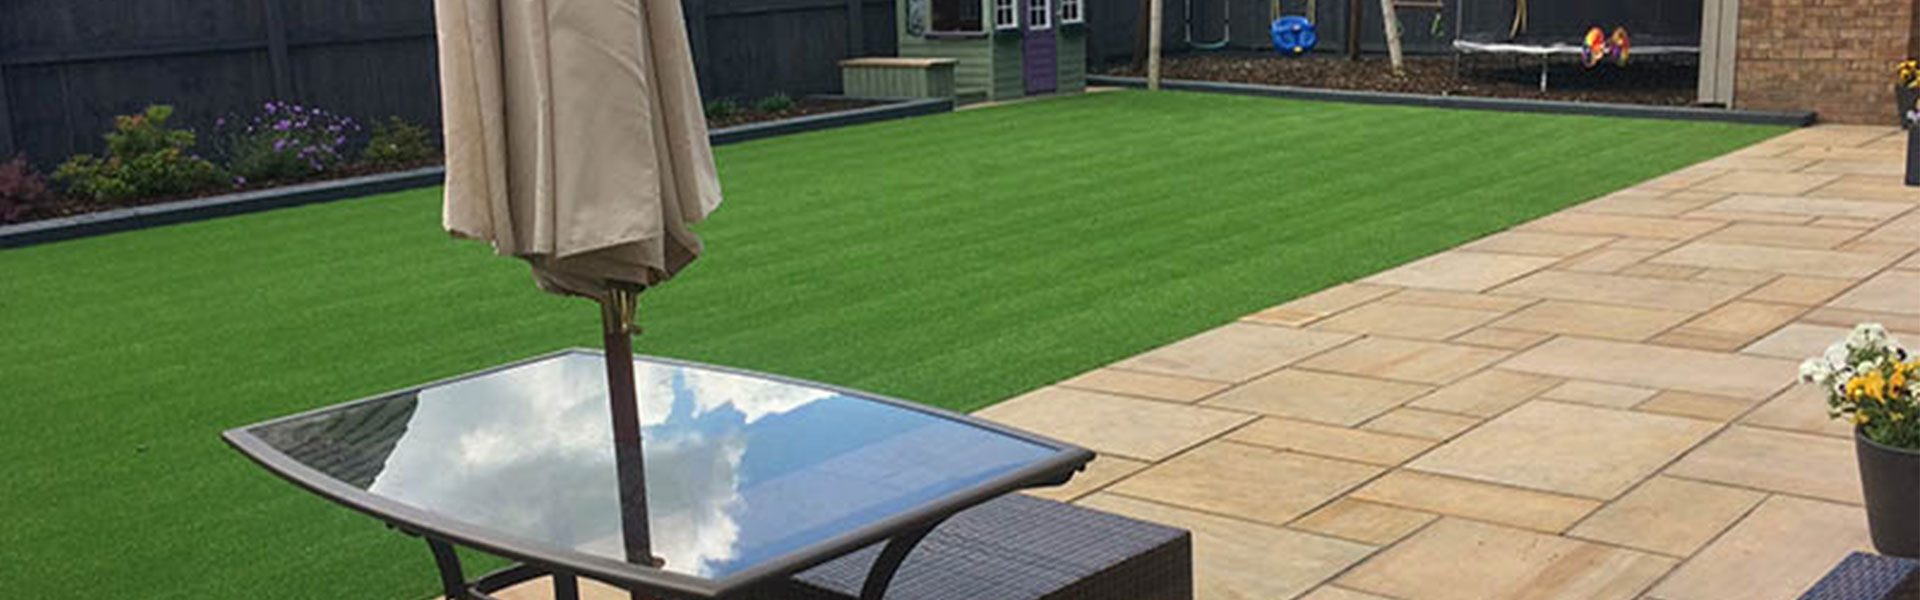 Have Fresh Surroundings With Artificial Grass